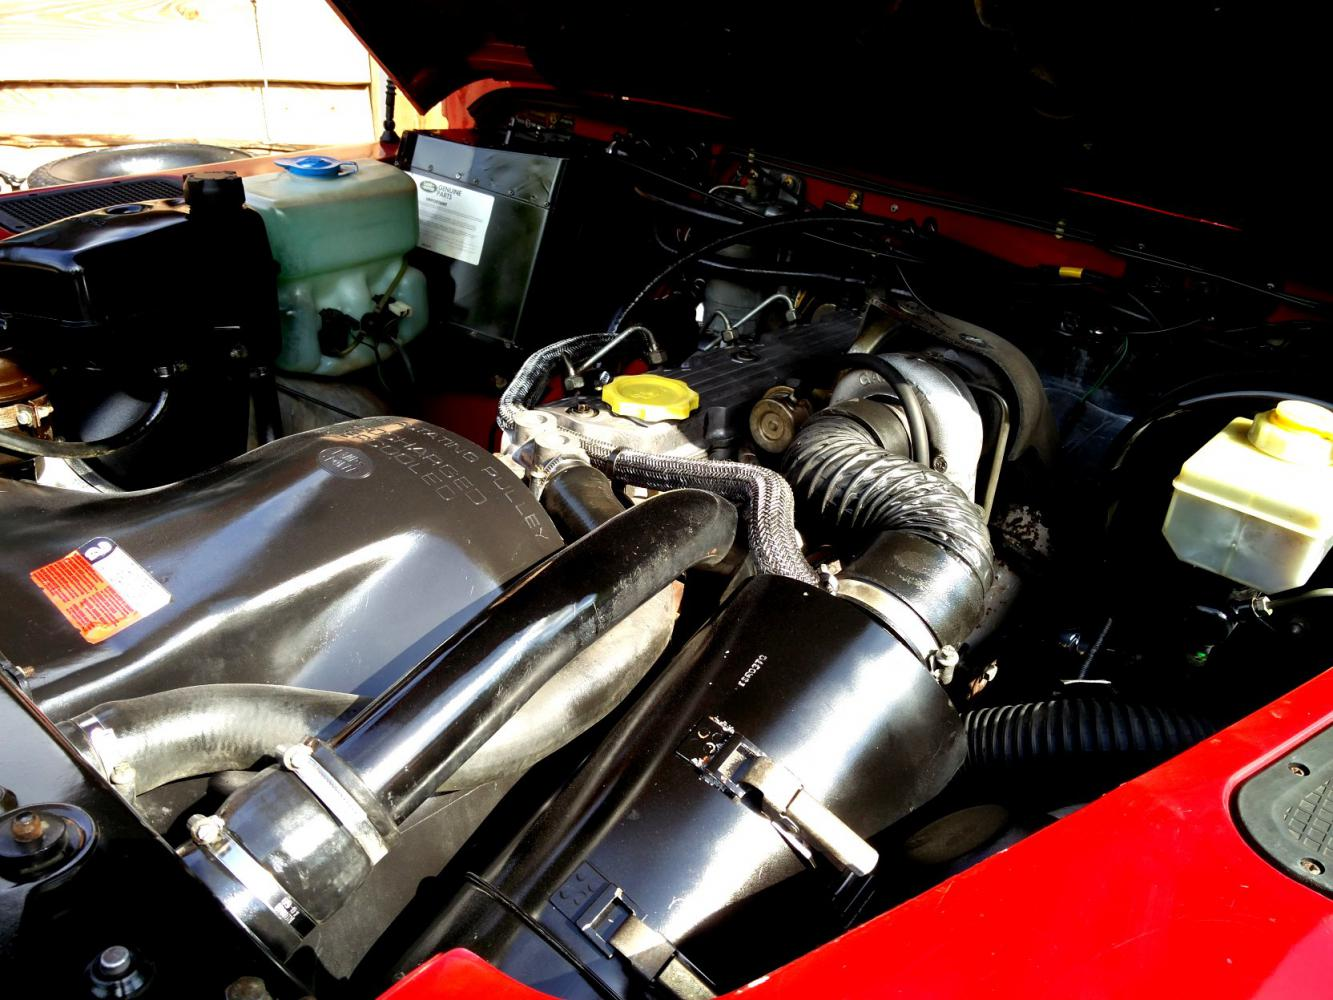 Click image for larger version  Name:1992 LR LHD Defender 90 Red 200 Tdi engine right.jpg Views:149 Size:166.1 KB ID:263746